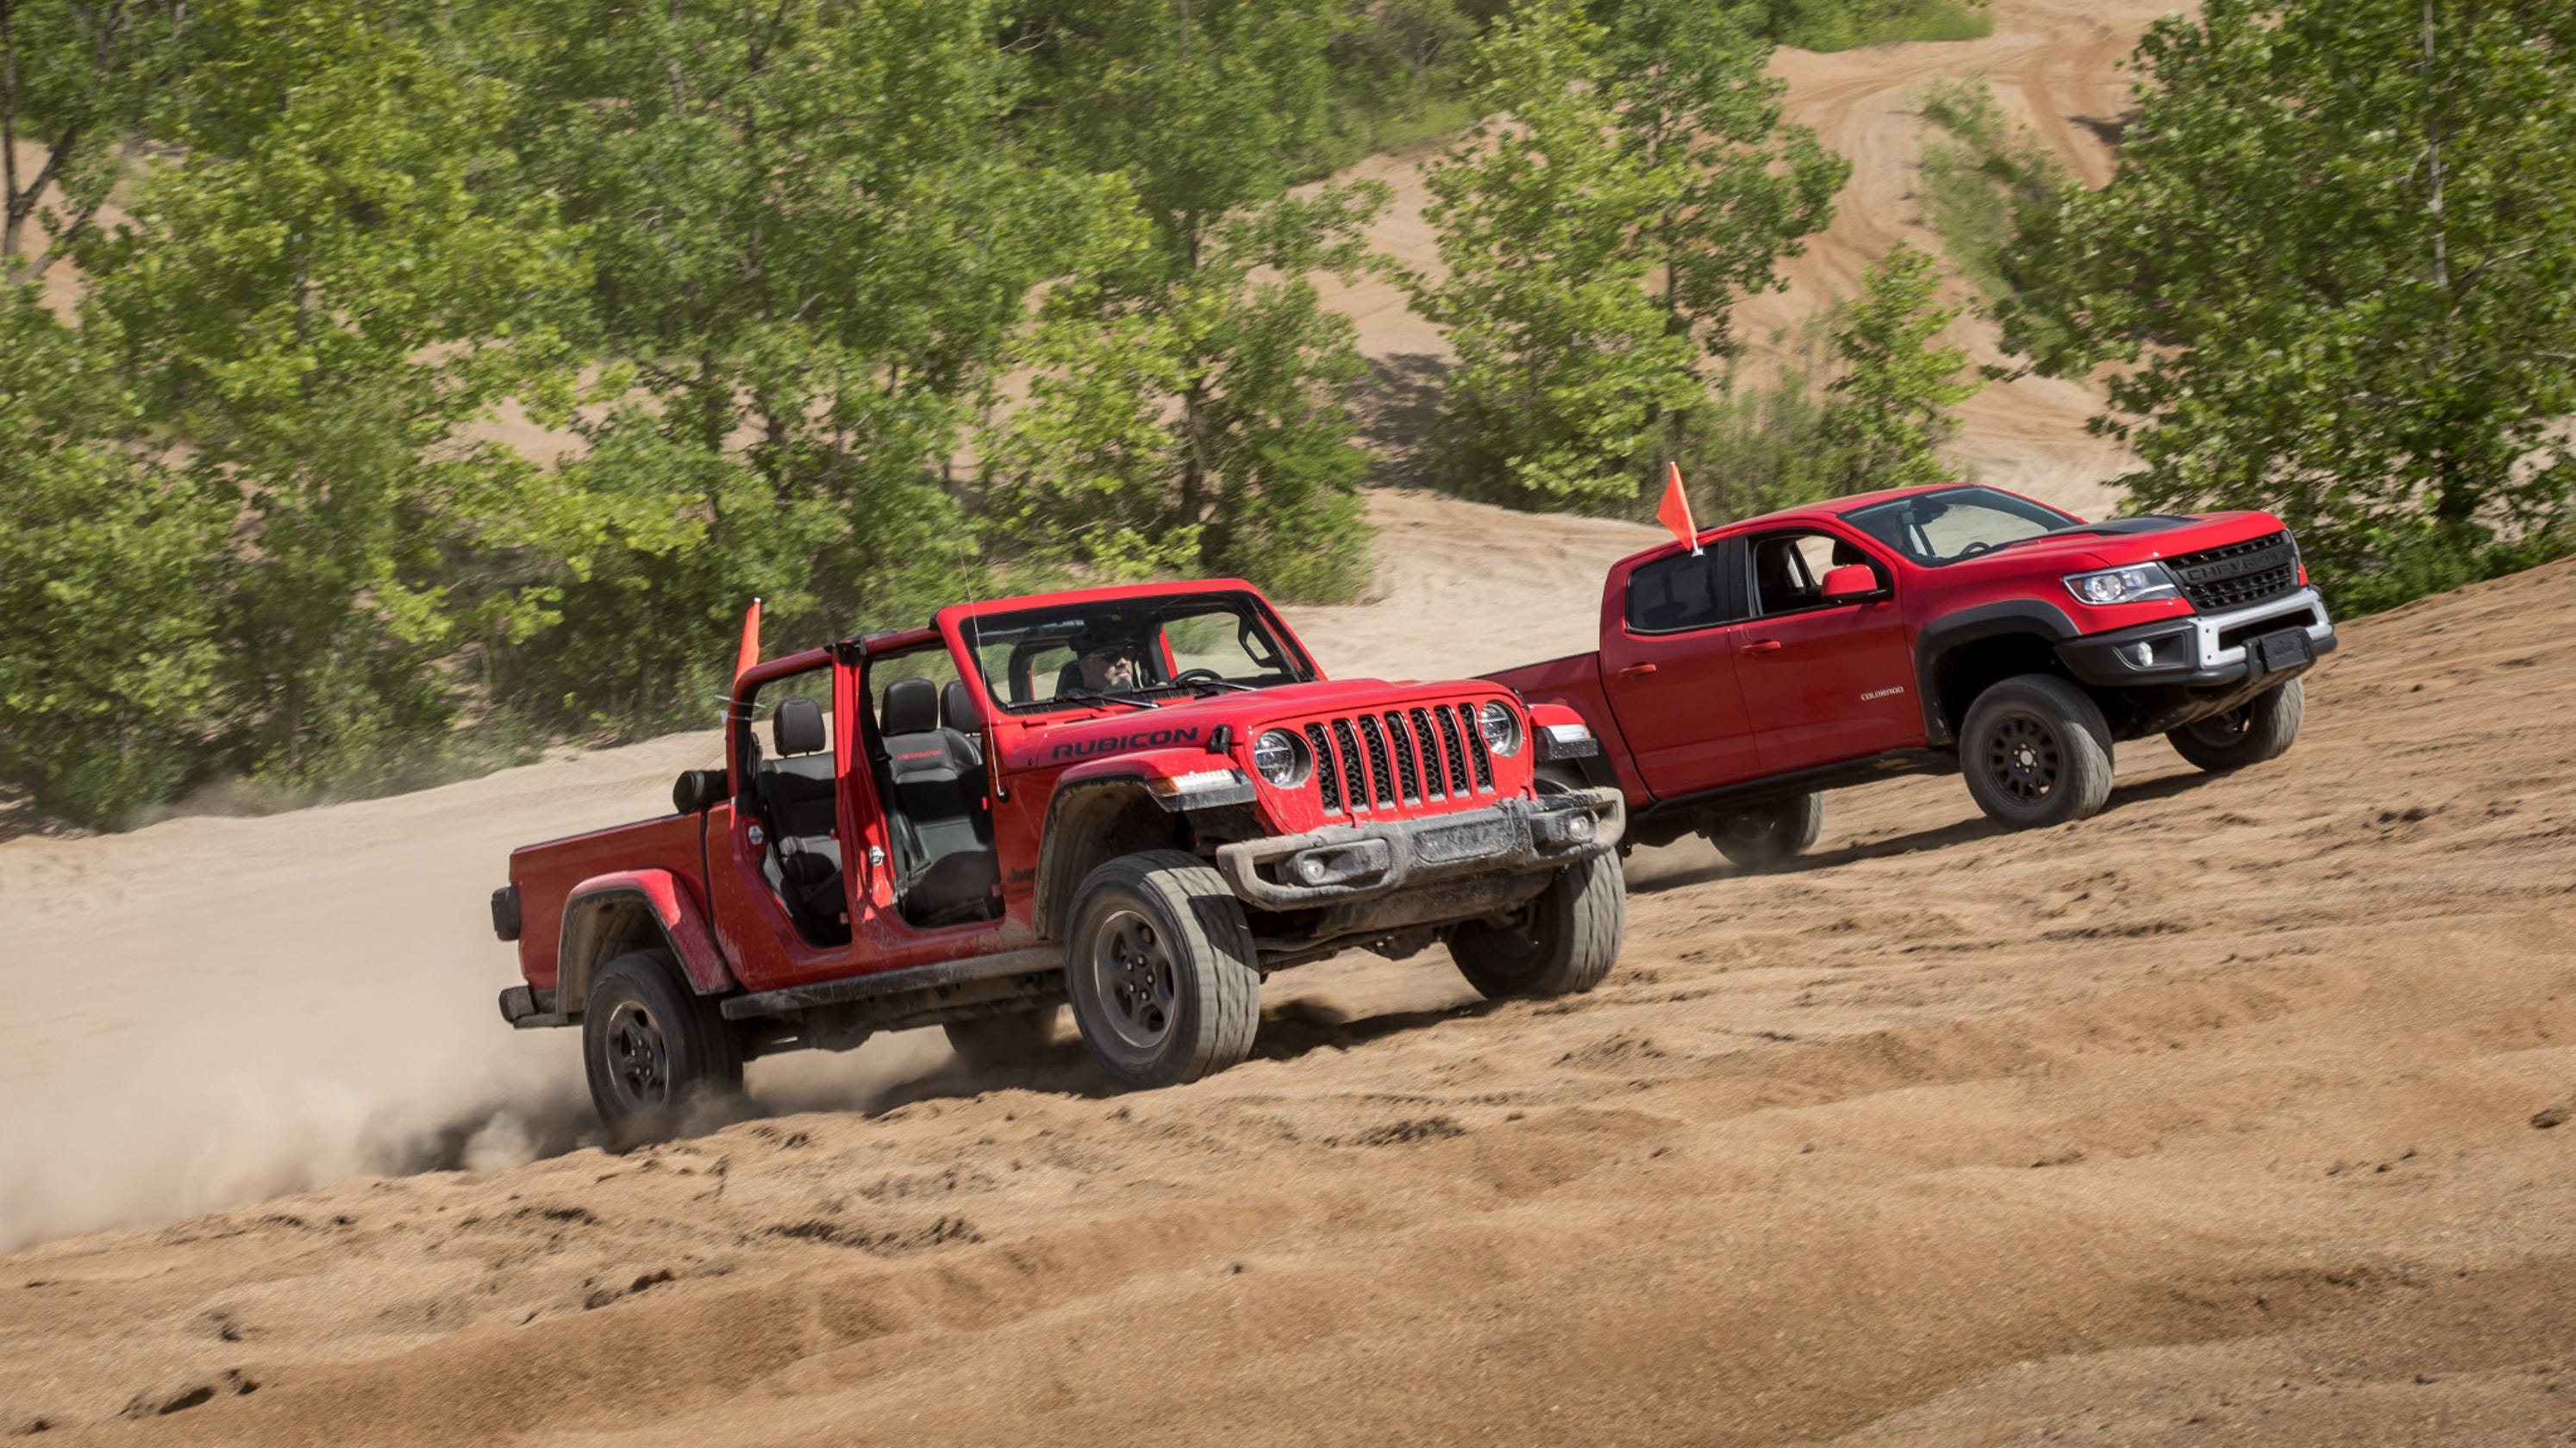 best budget trail camera 2020 2020 Jeep Gladiator review: Doorless is fun, but this Jeep offers more